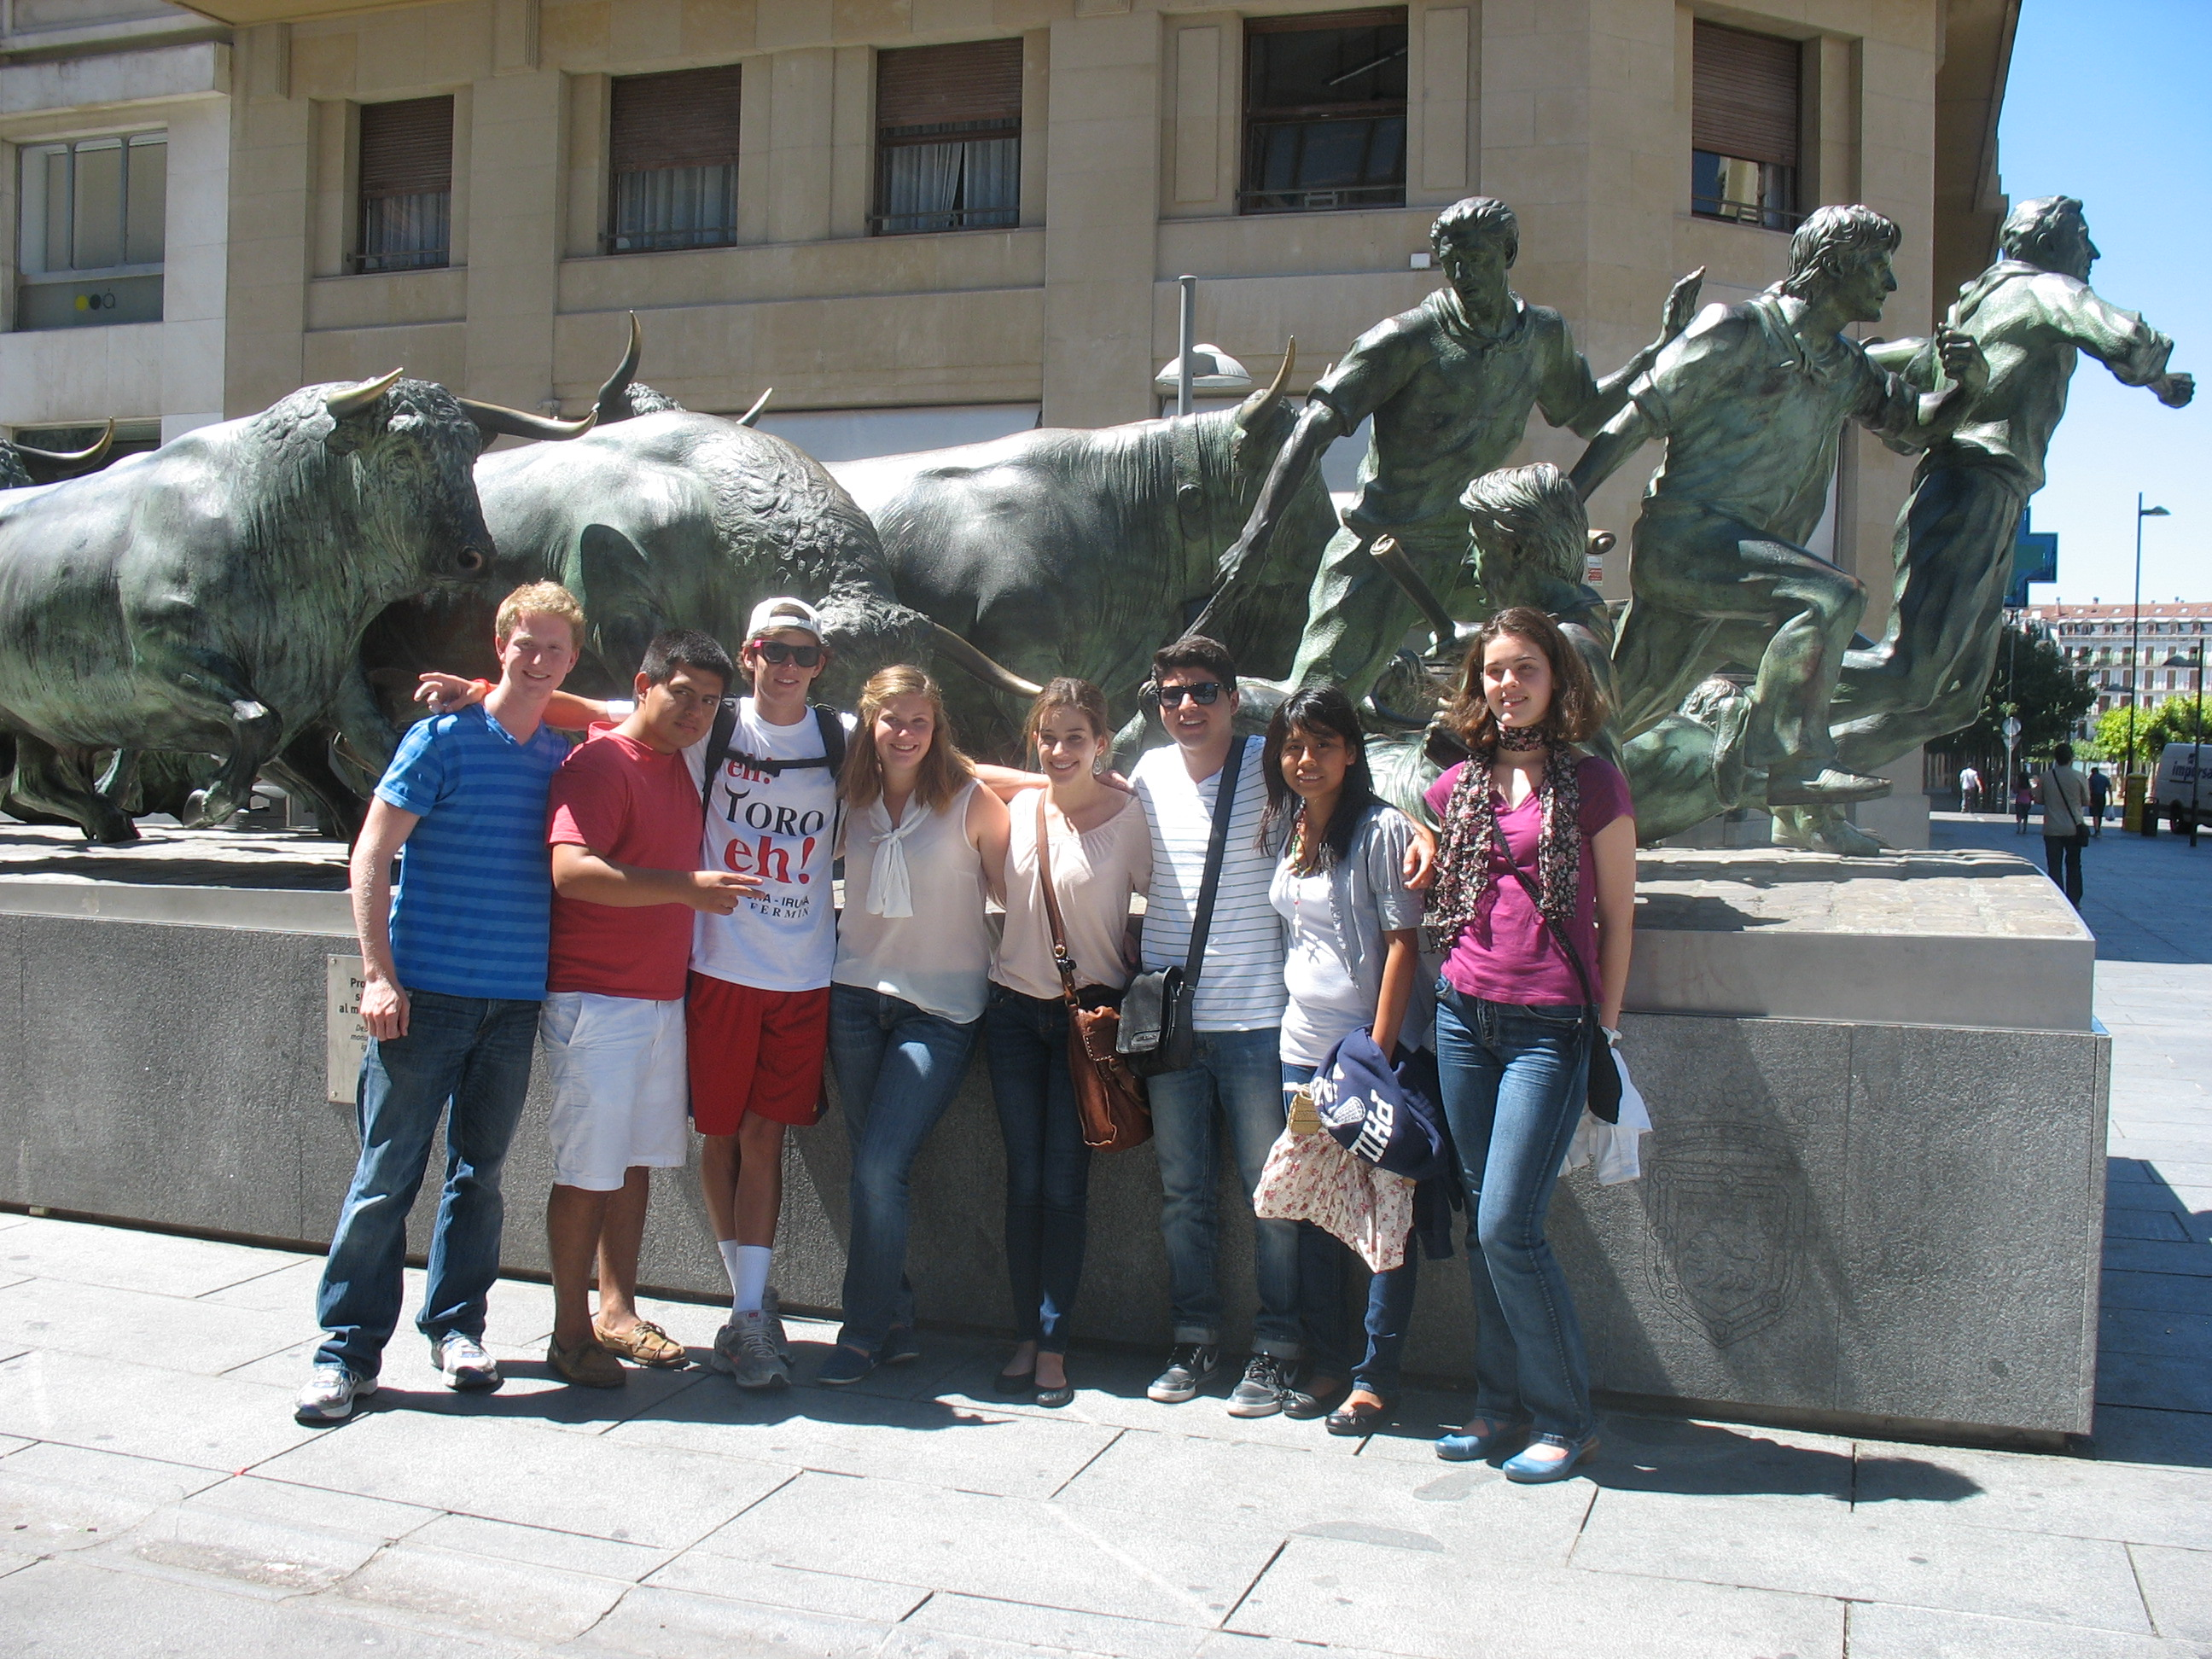 Summer Program - Travel And Tourism | Experiment in International Living: Spain - Cultural Discovery